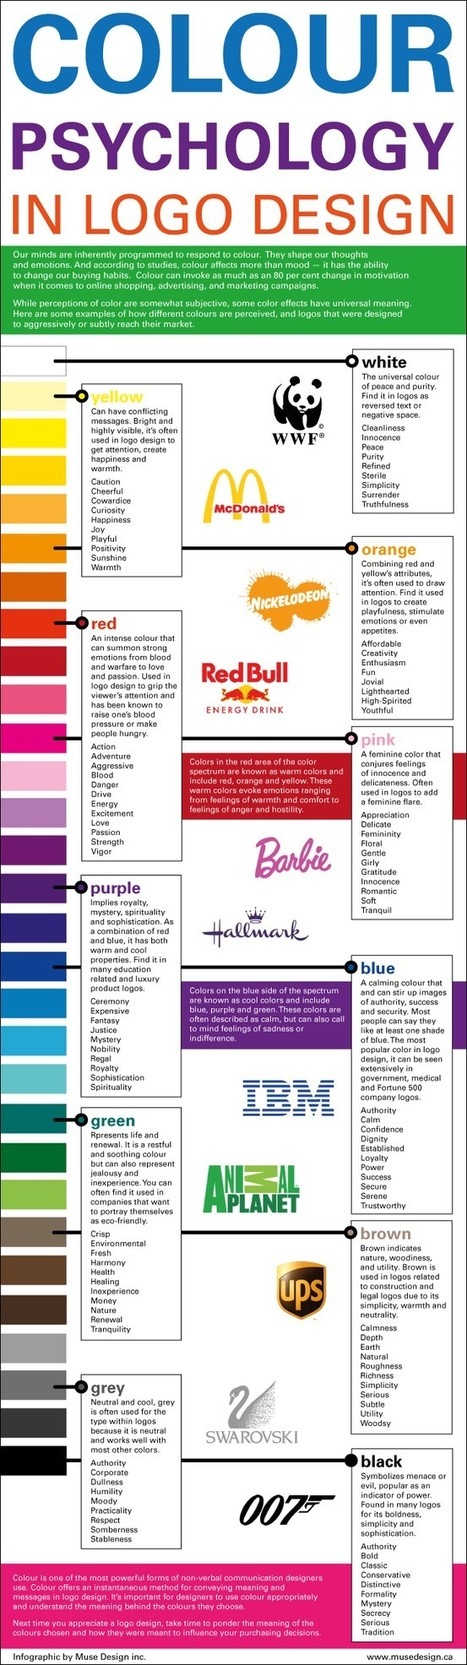 Lessons In Cool Color Psychology From Power Logo Designs [Infographic] | Design Revolution | Scoop.it